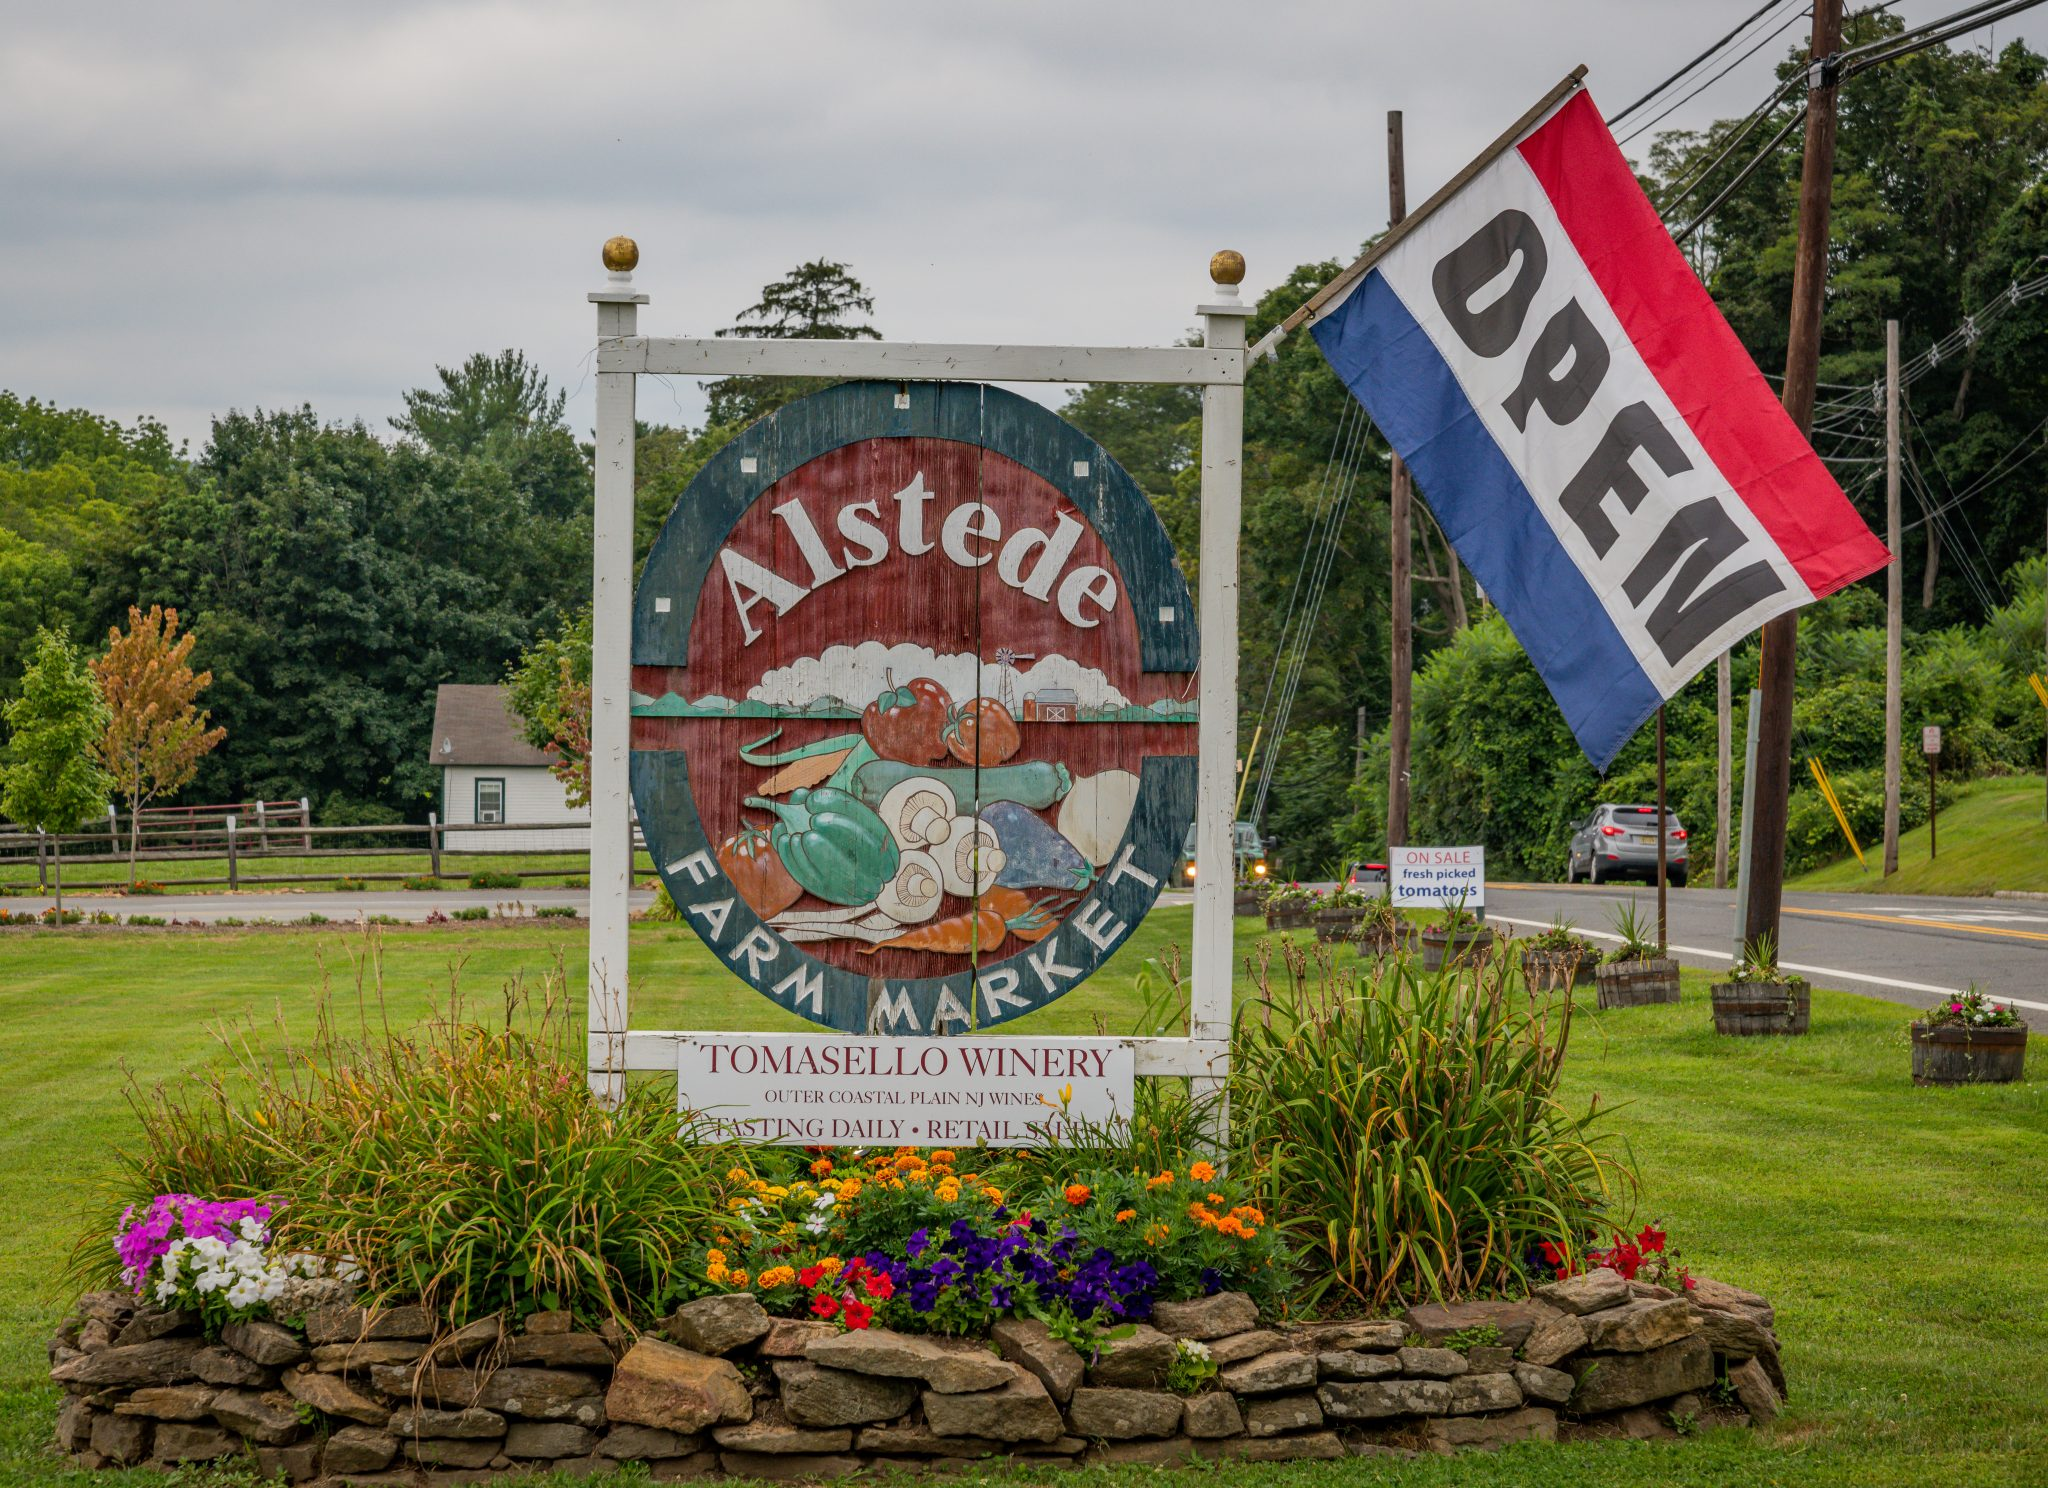 Alstede Farms, Exterior, Alstede Main Sign, 2019, Farm, Recreation, Farm,